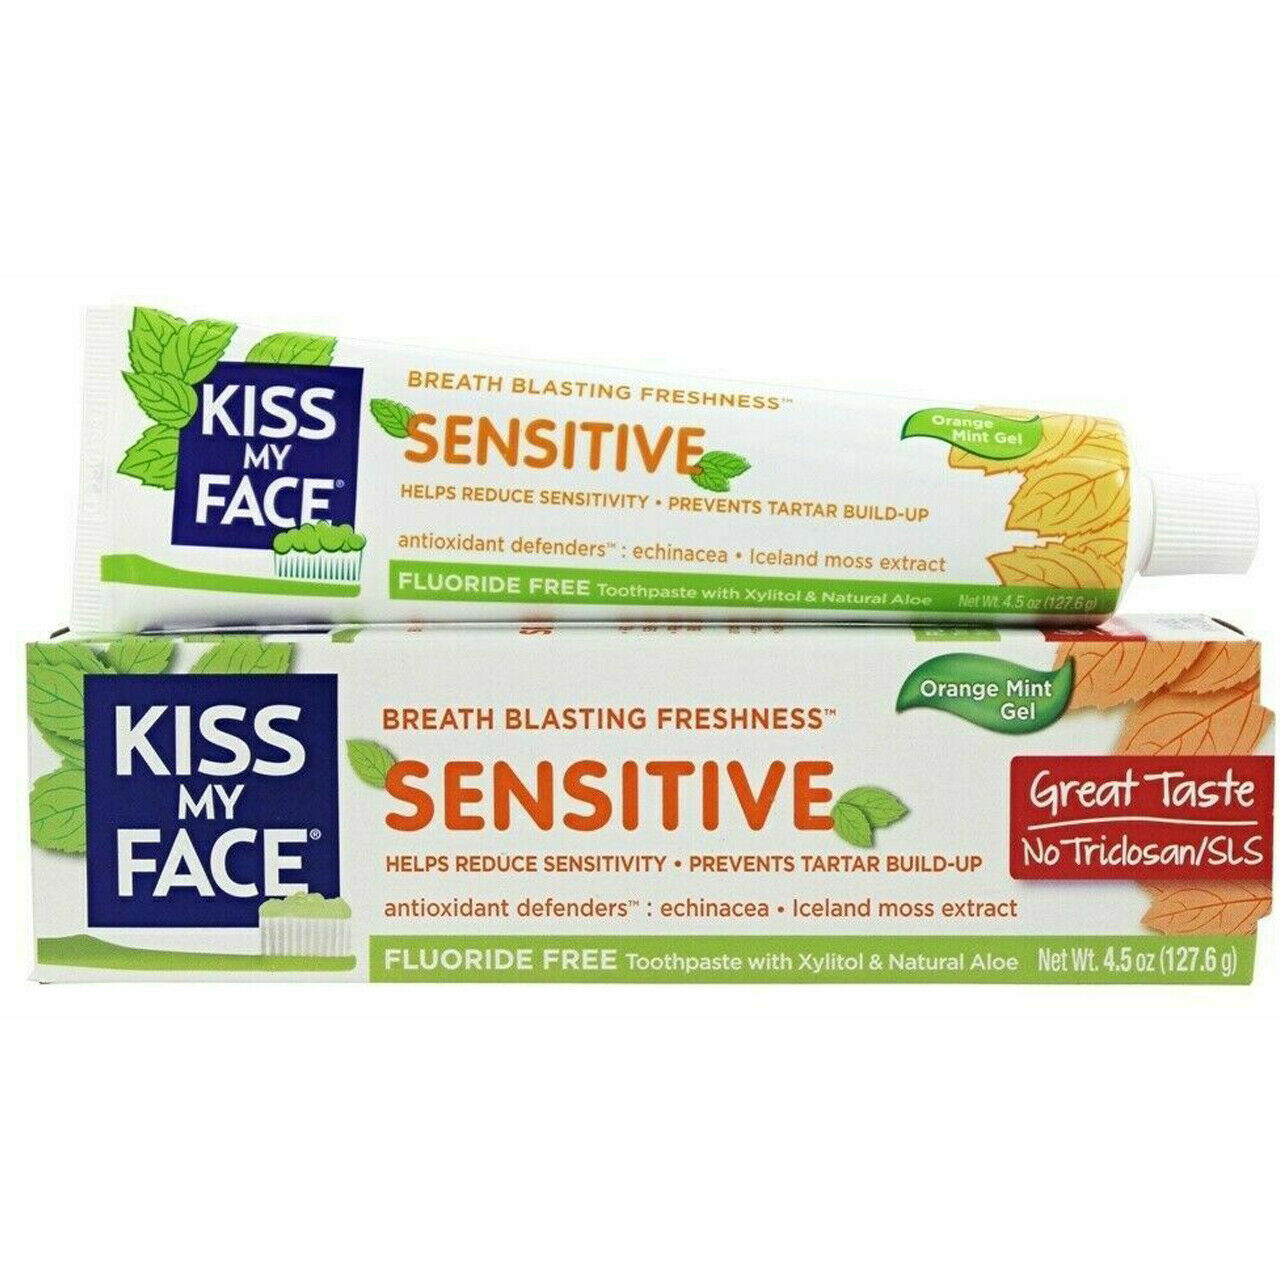 Primary image for Kiss My Face Sensitive Toothpaste Gel Fluoride Free Orange Mint 4.5 oz. (127.6g)